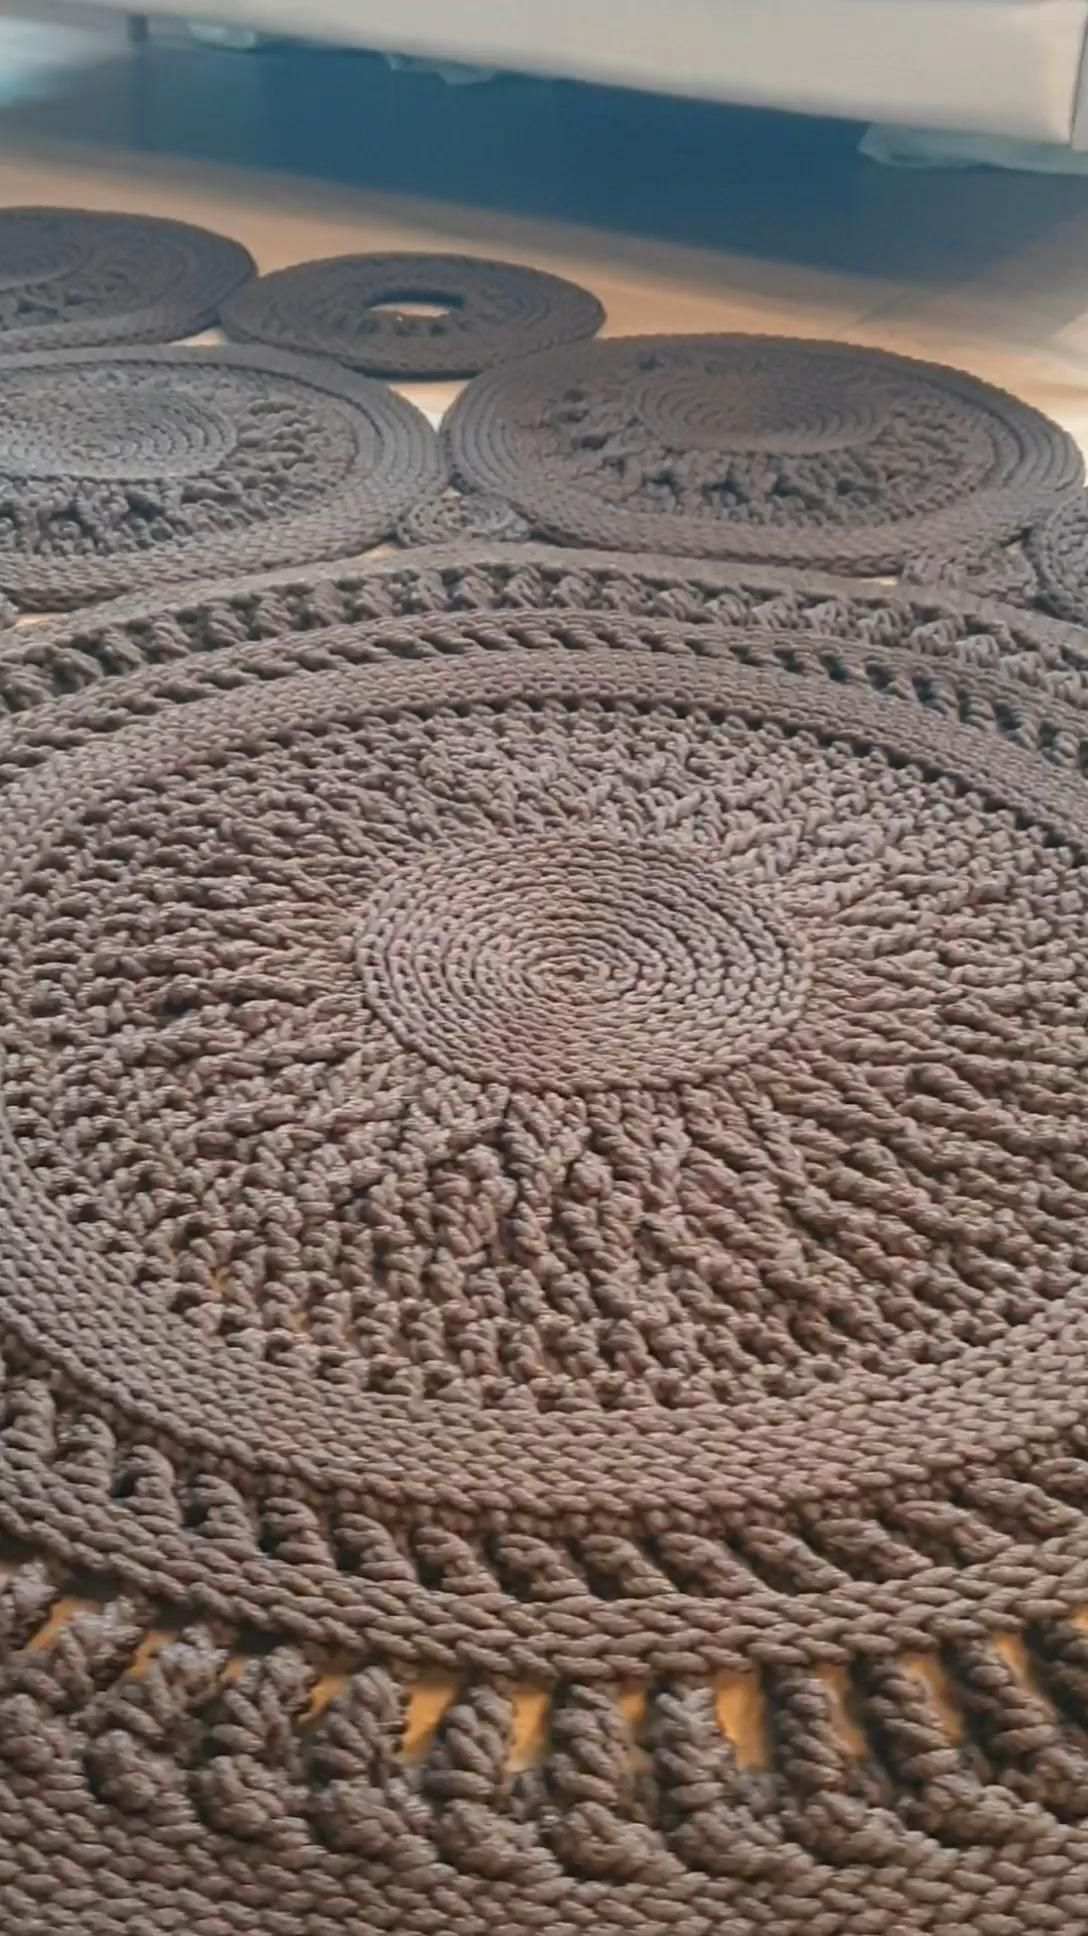 Crochet rug pattern. Textual Description on English. LaceCoins